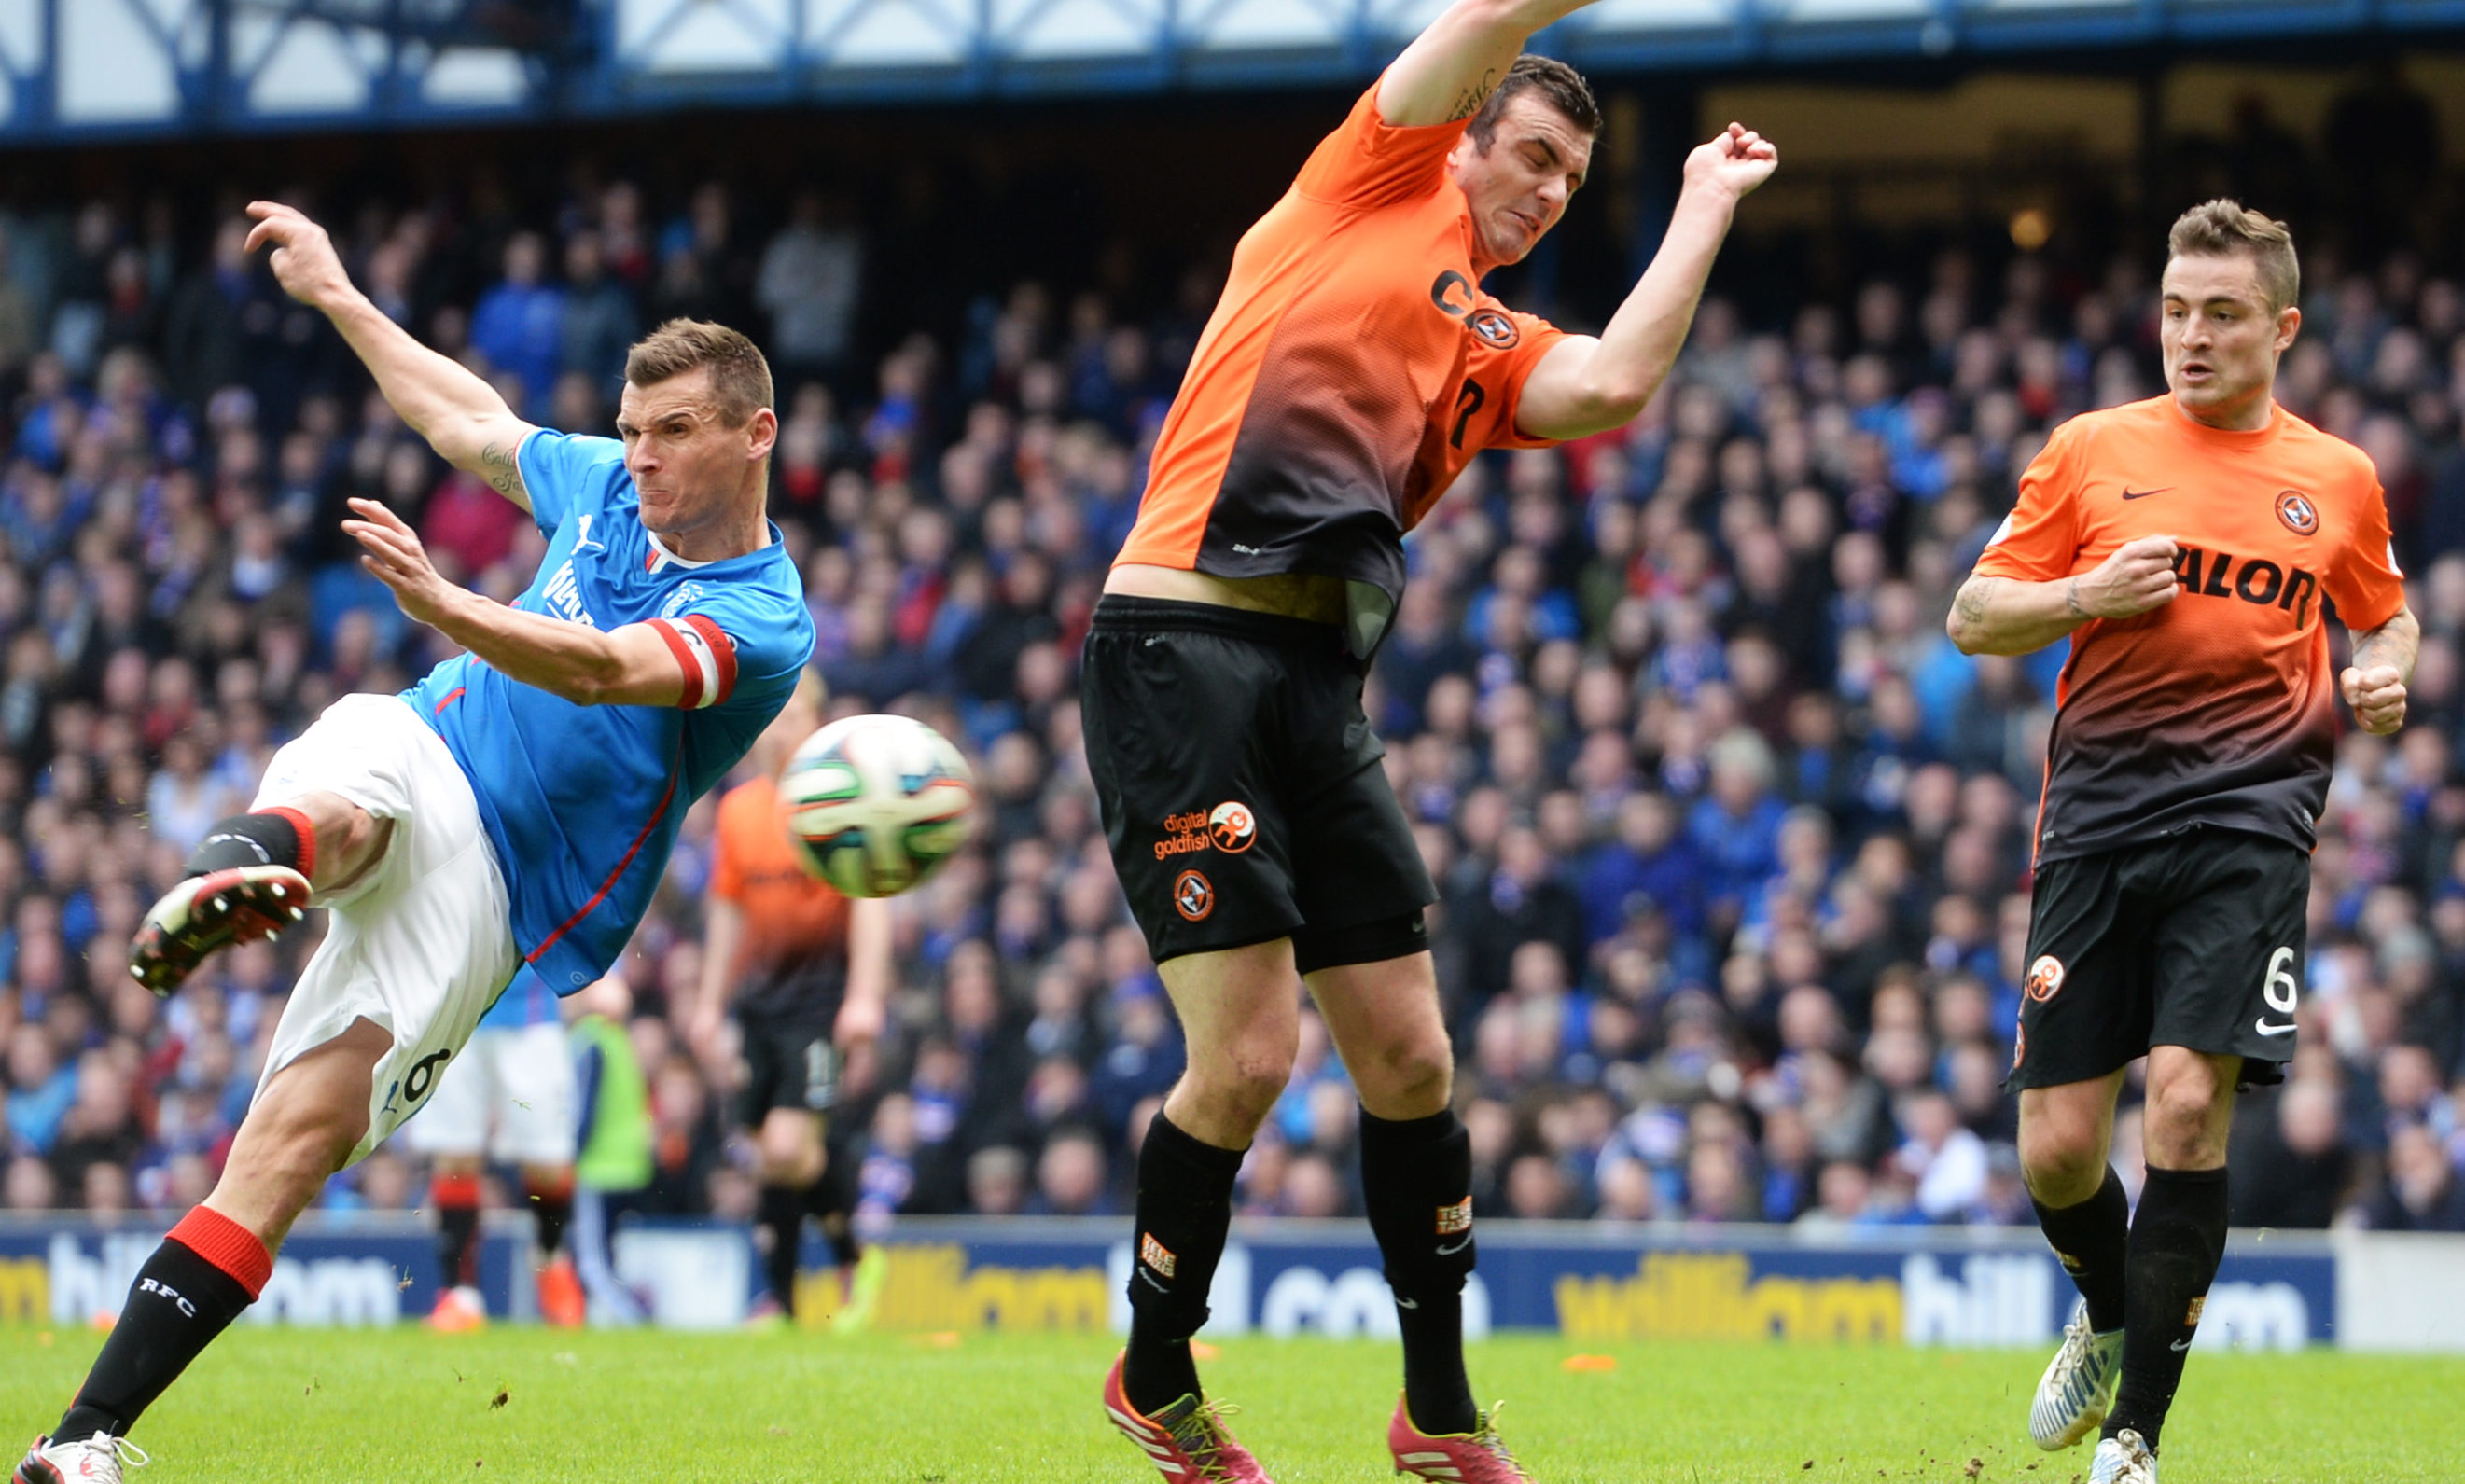 Lee McCulloch facing Dundee United in 2014 during his time at Rangers.